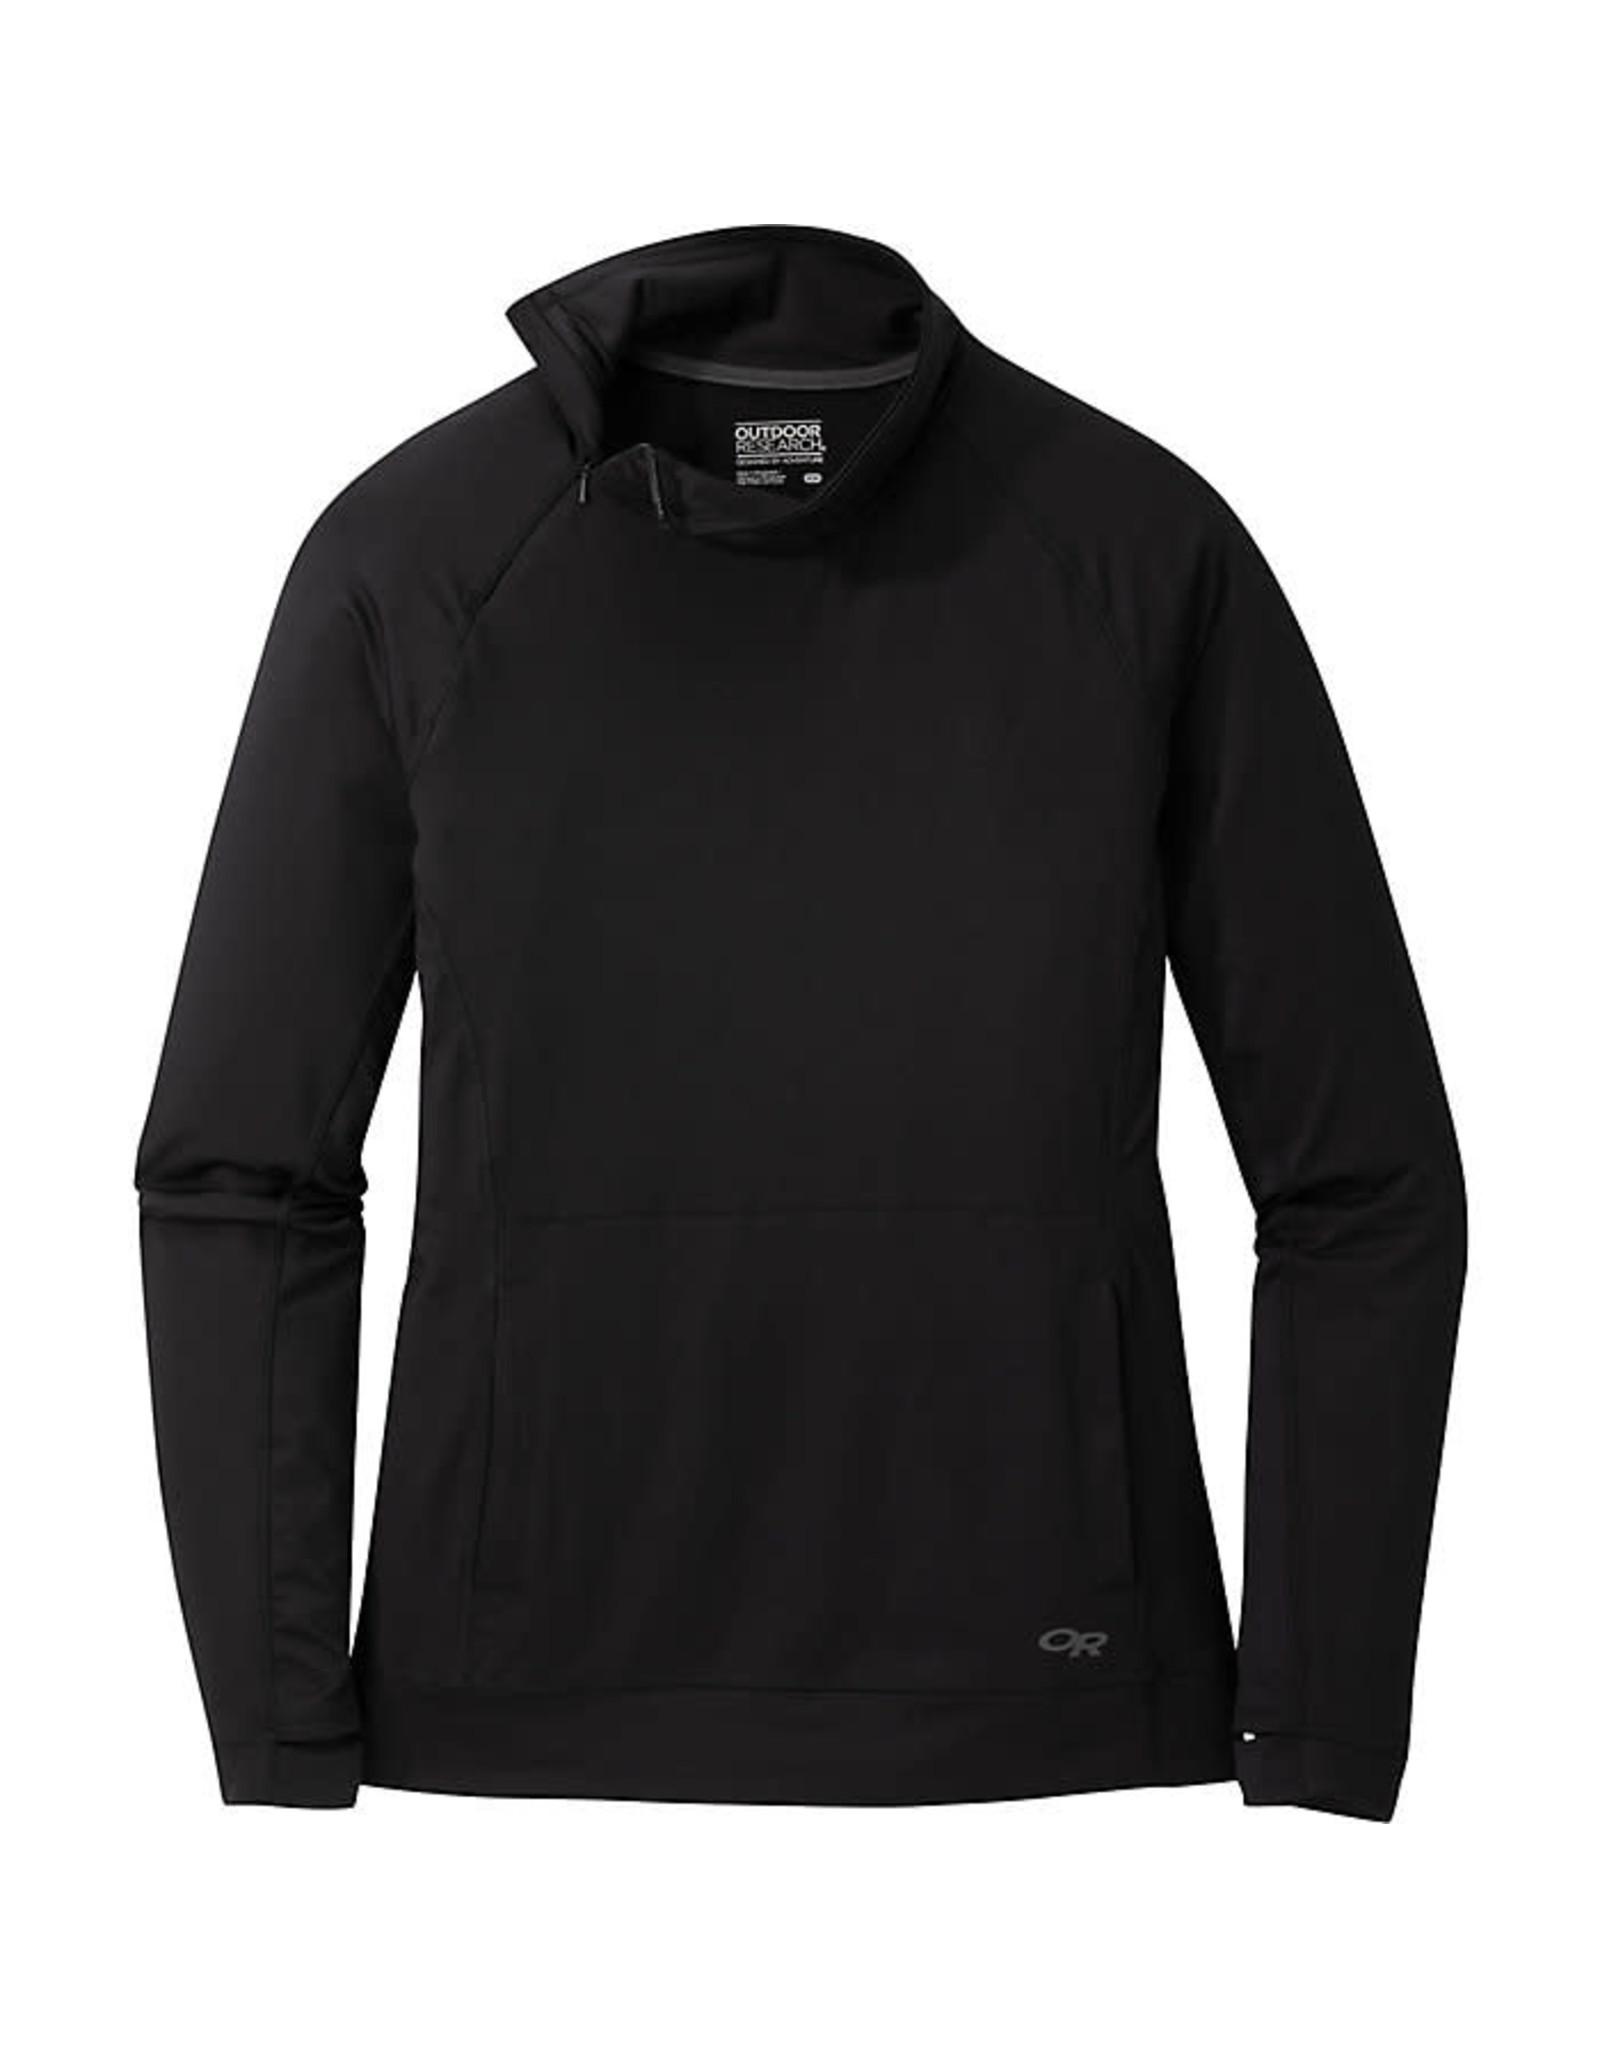 Outdoor Research Outdoor Research Wmn's Chain Reaction Quarter Zip Black M